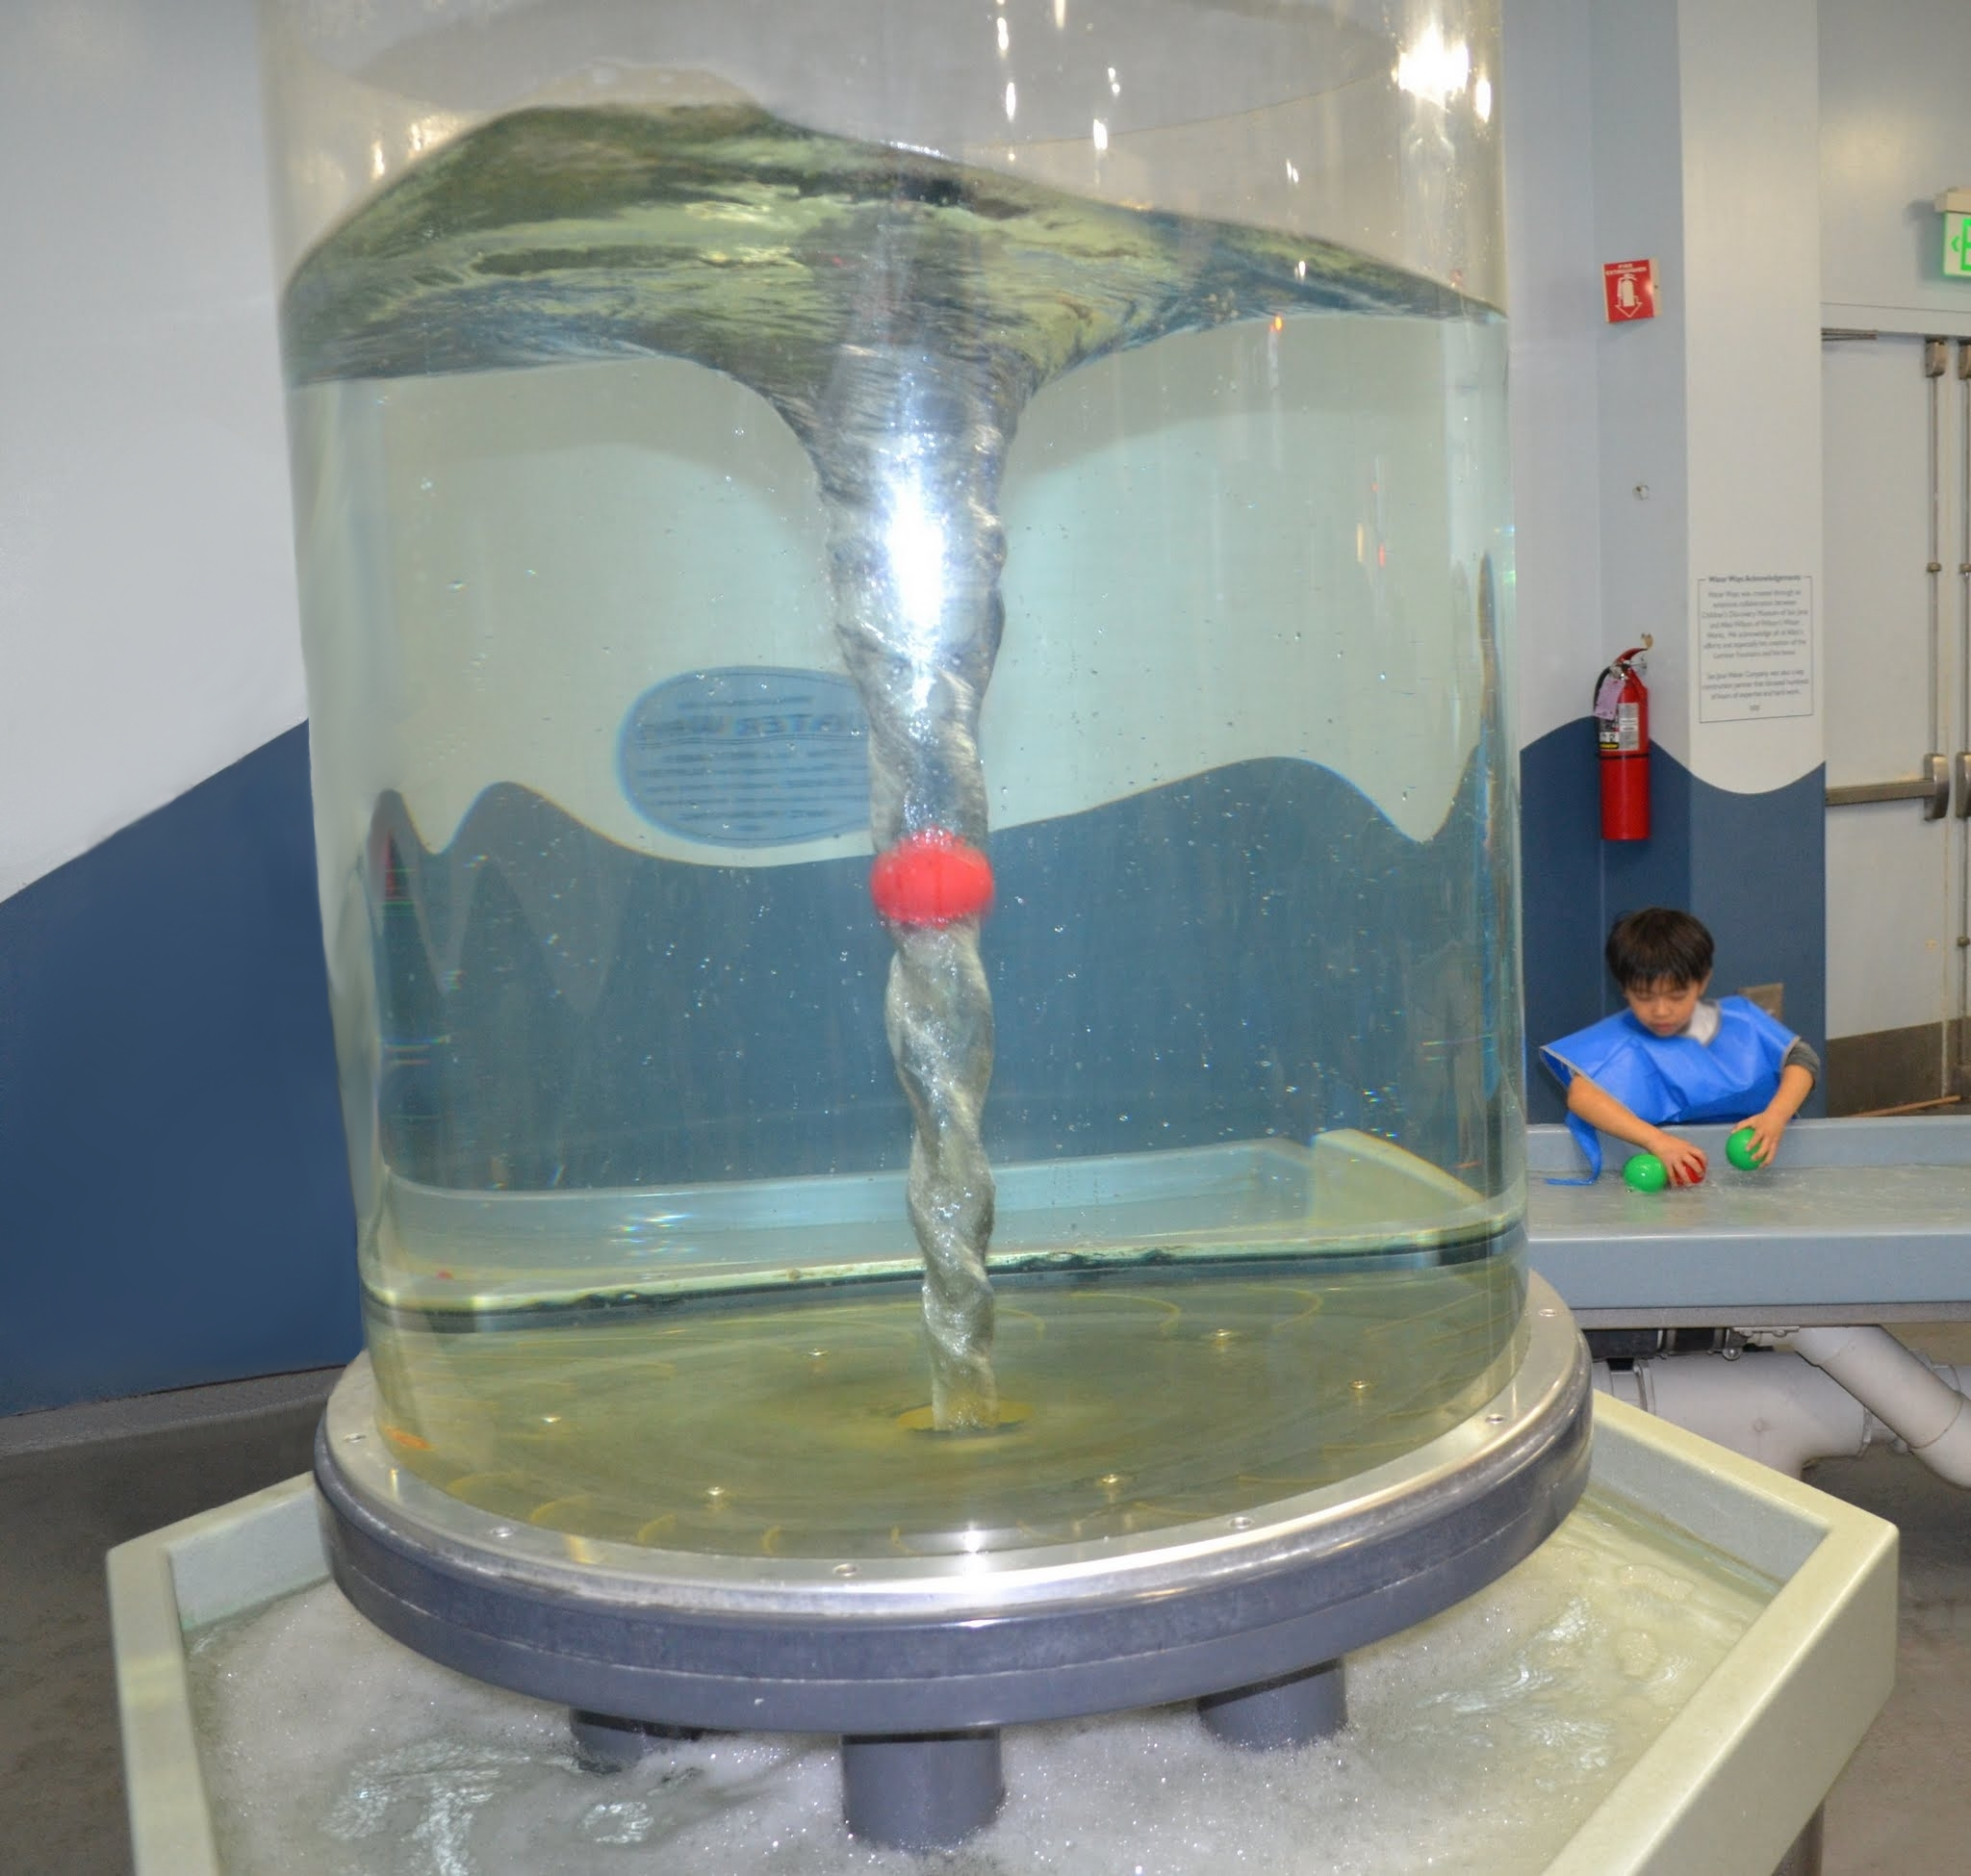 File:Water display at children's discovery museum in San Jose ...